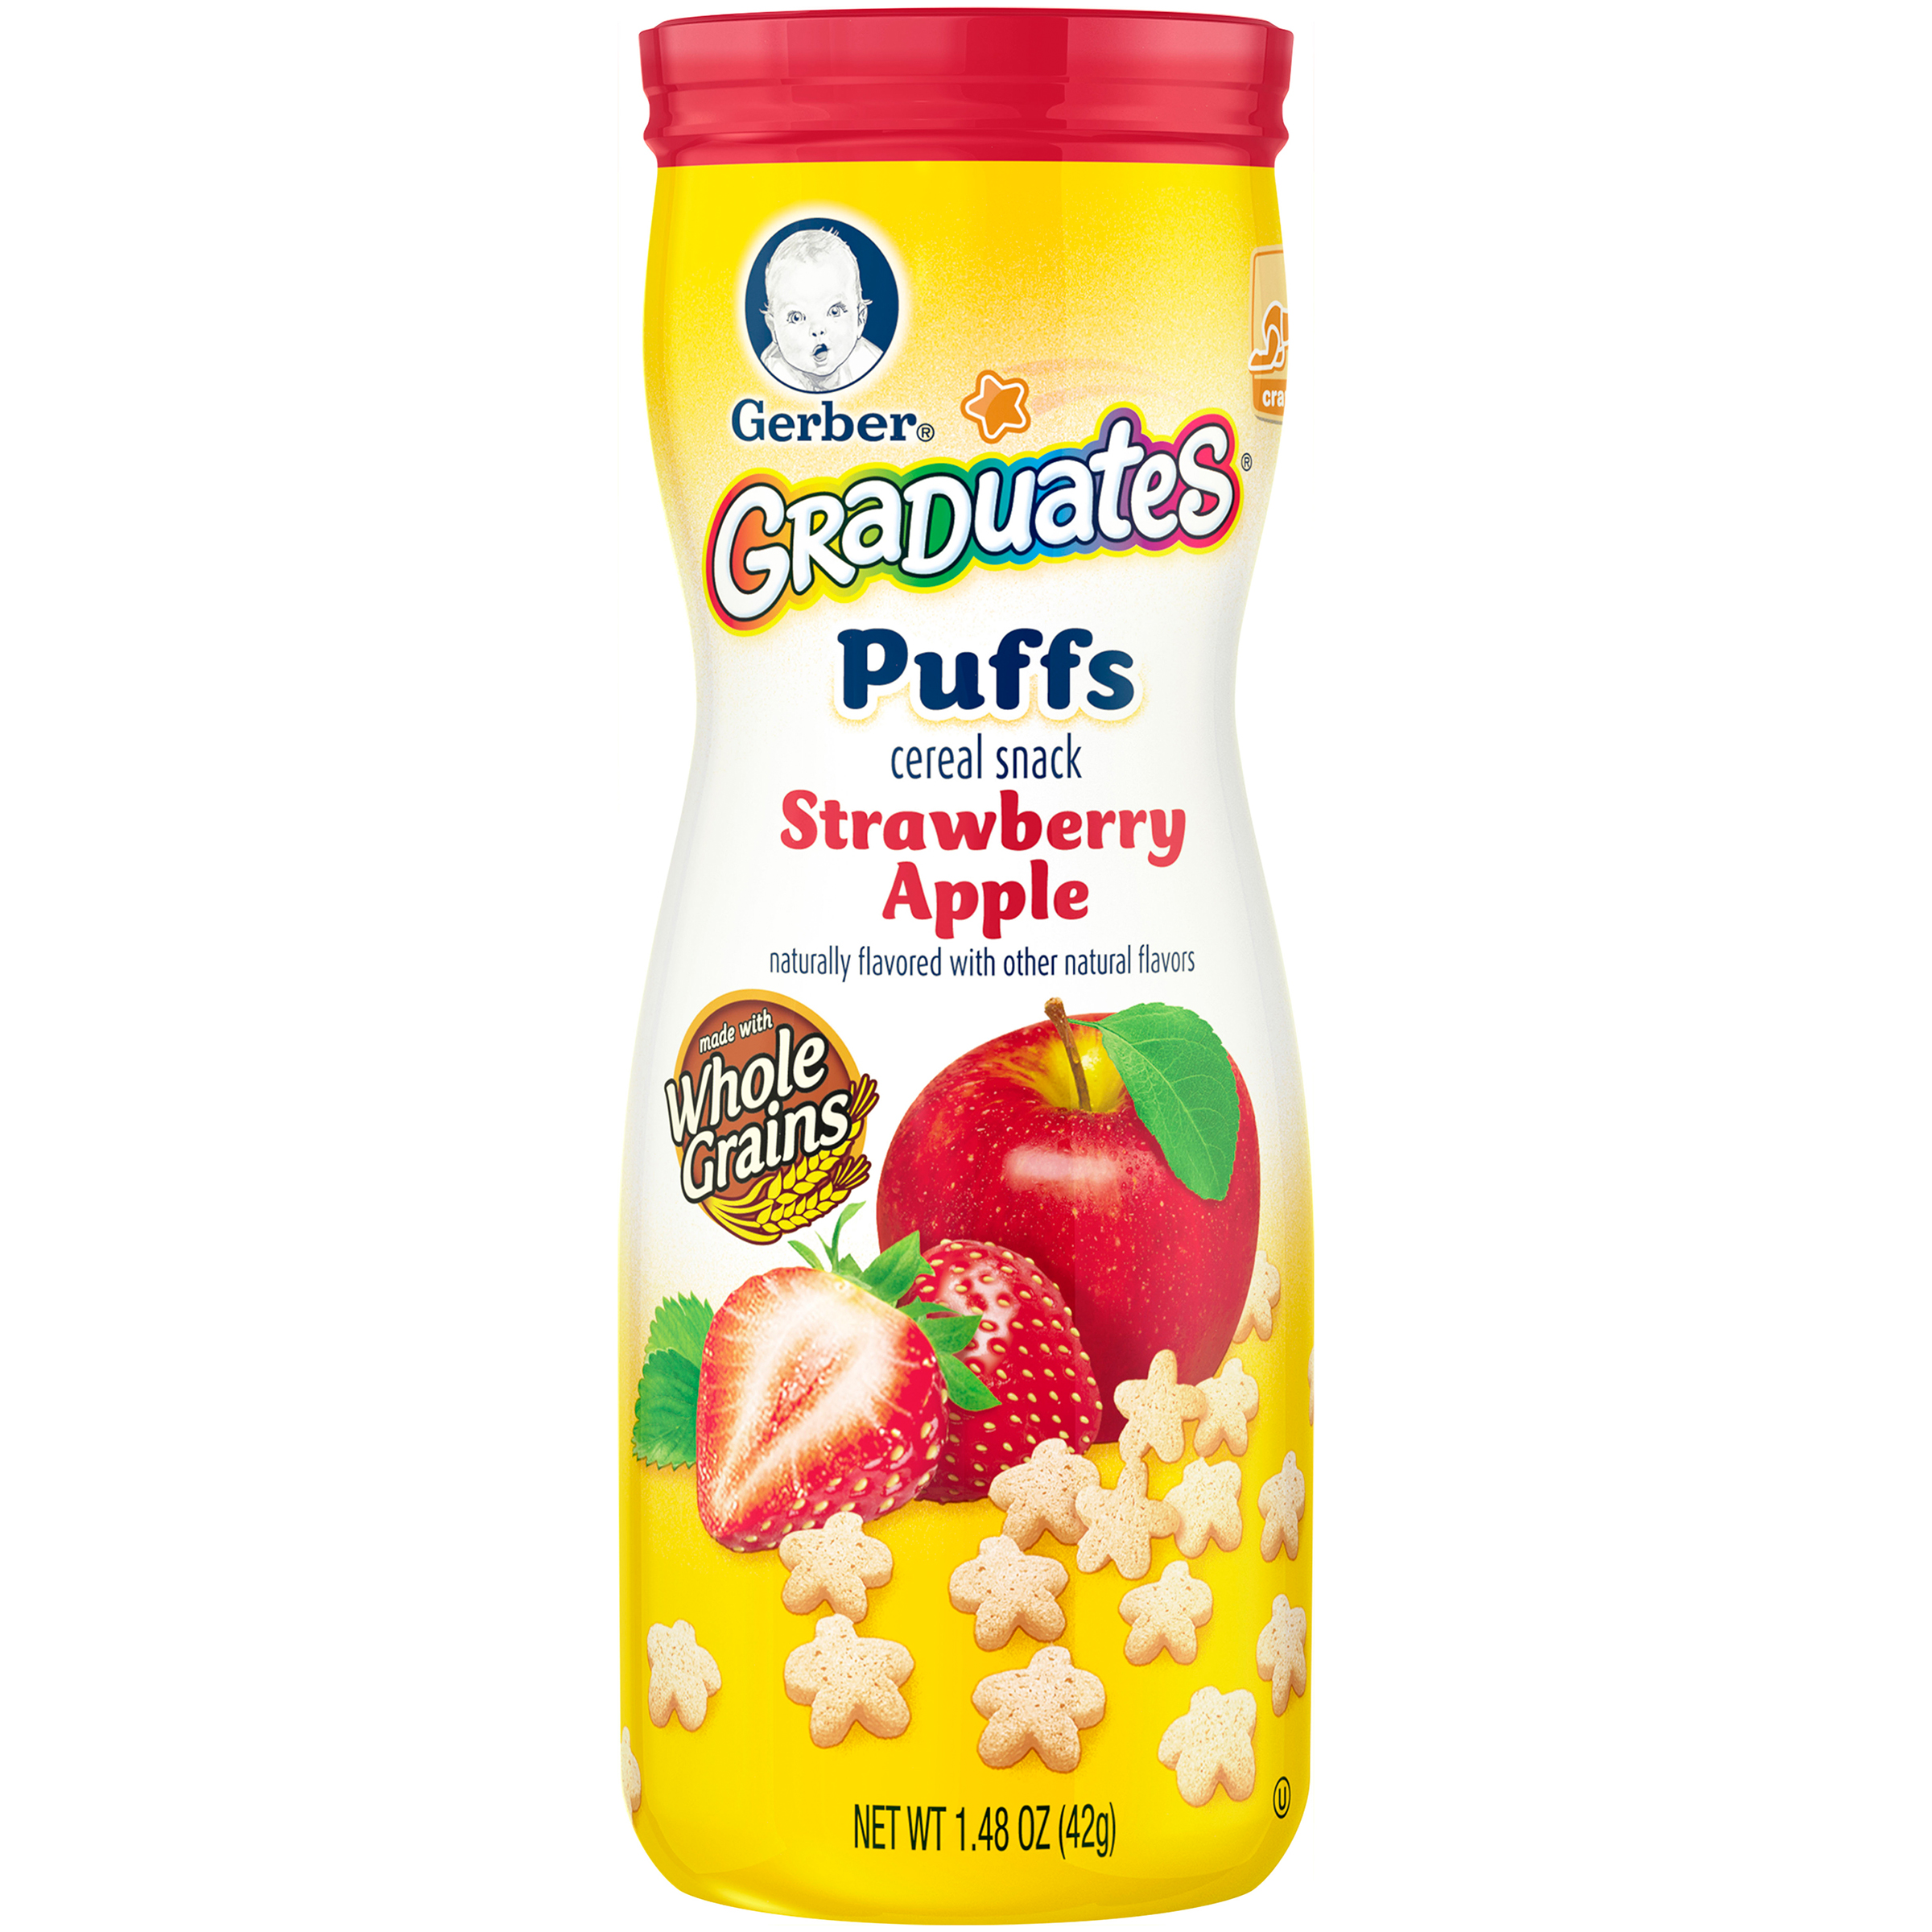 Gerber Graduates Puffs Strawberry Apple Cereal Snack Crawler 1.48oz